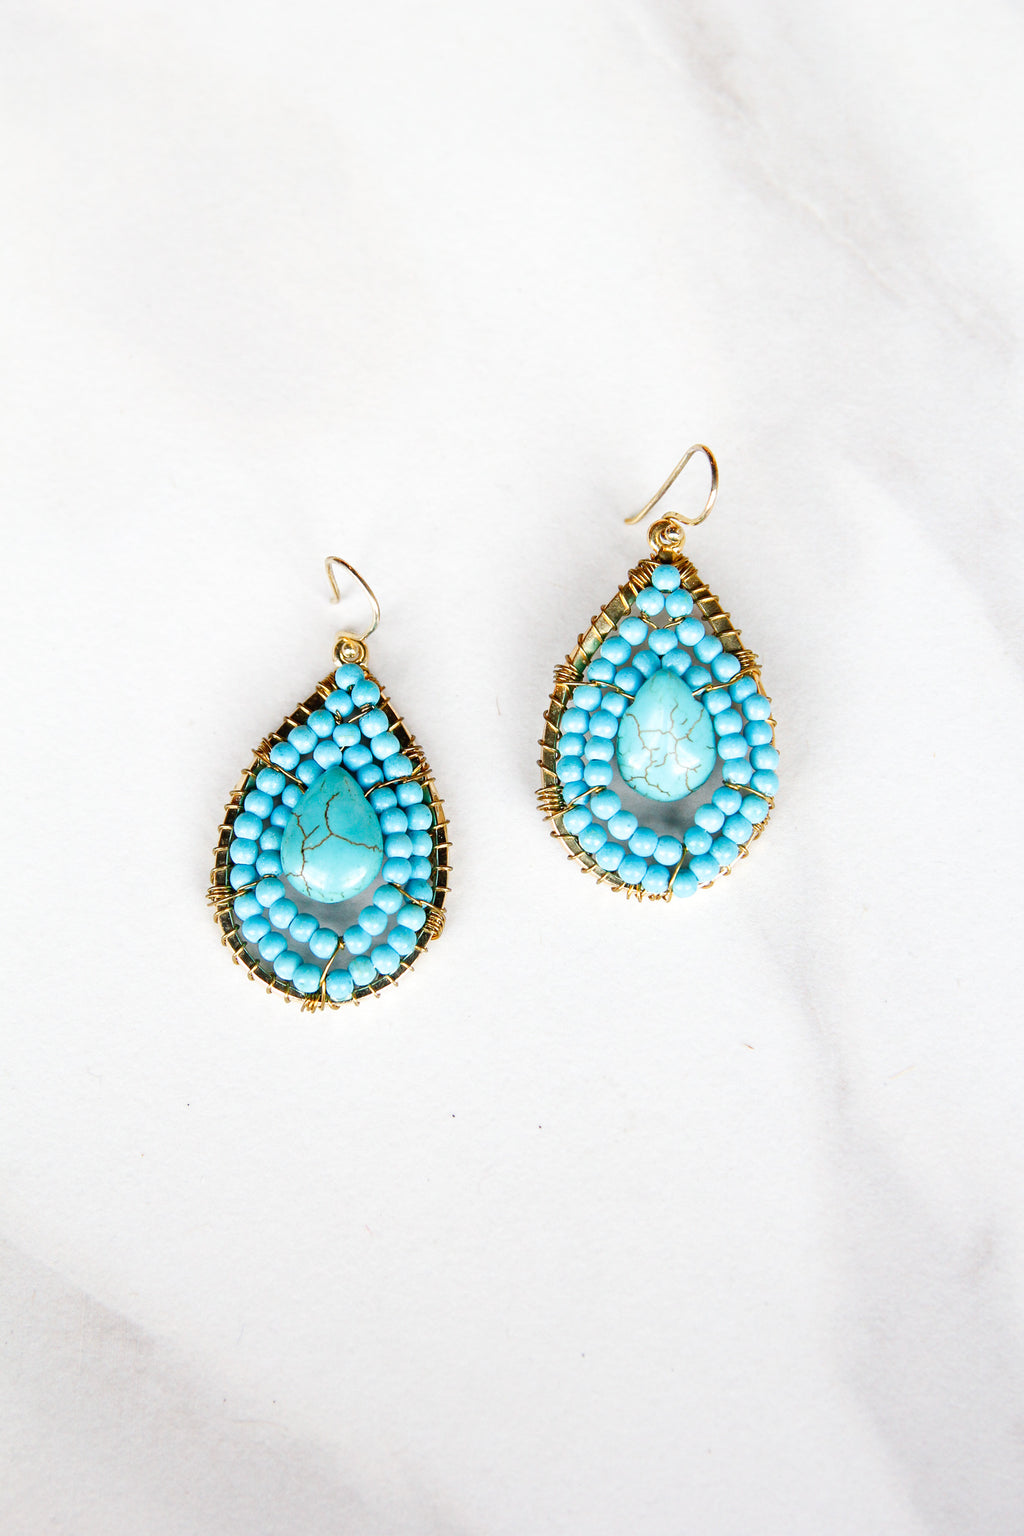 Beaded Stone Teardrop Earrings - Turquoise